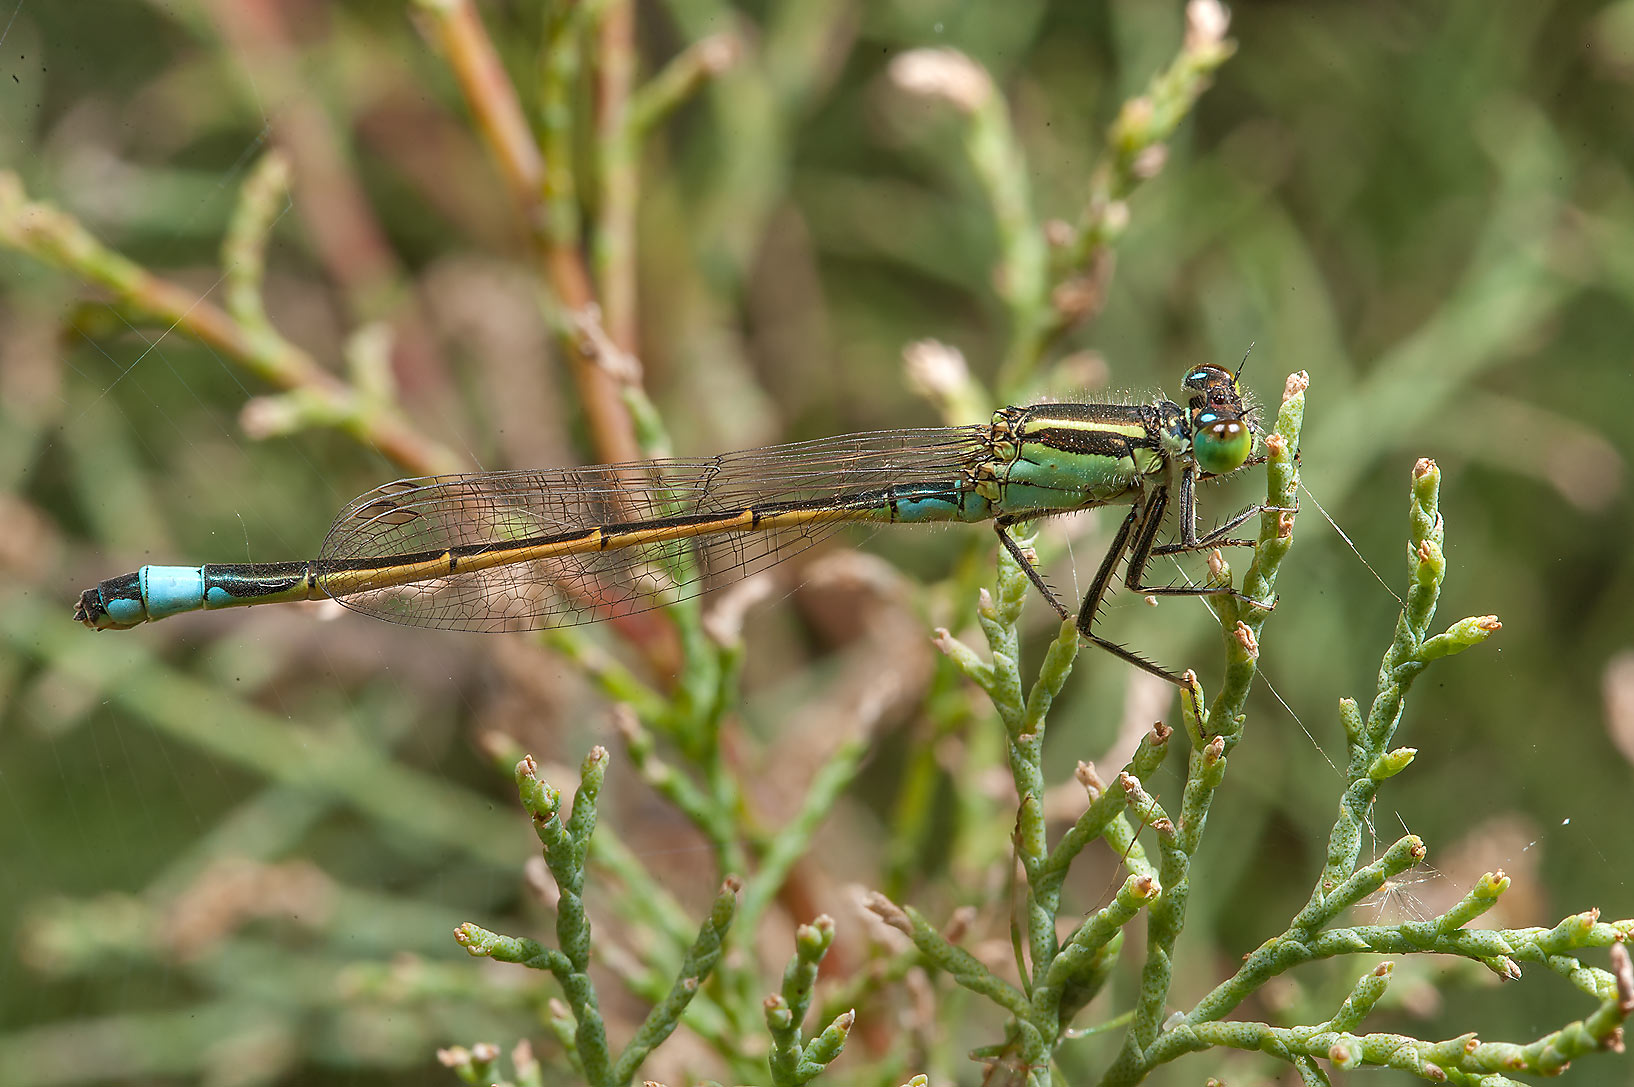 Evans bluetail damselfly (Ischnura evansii) near...treatment ponds. Doha, Qatar